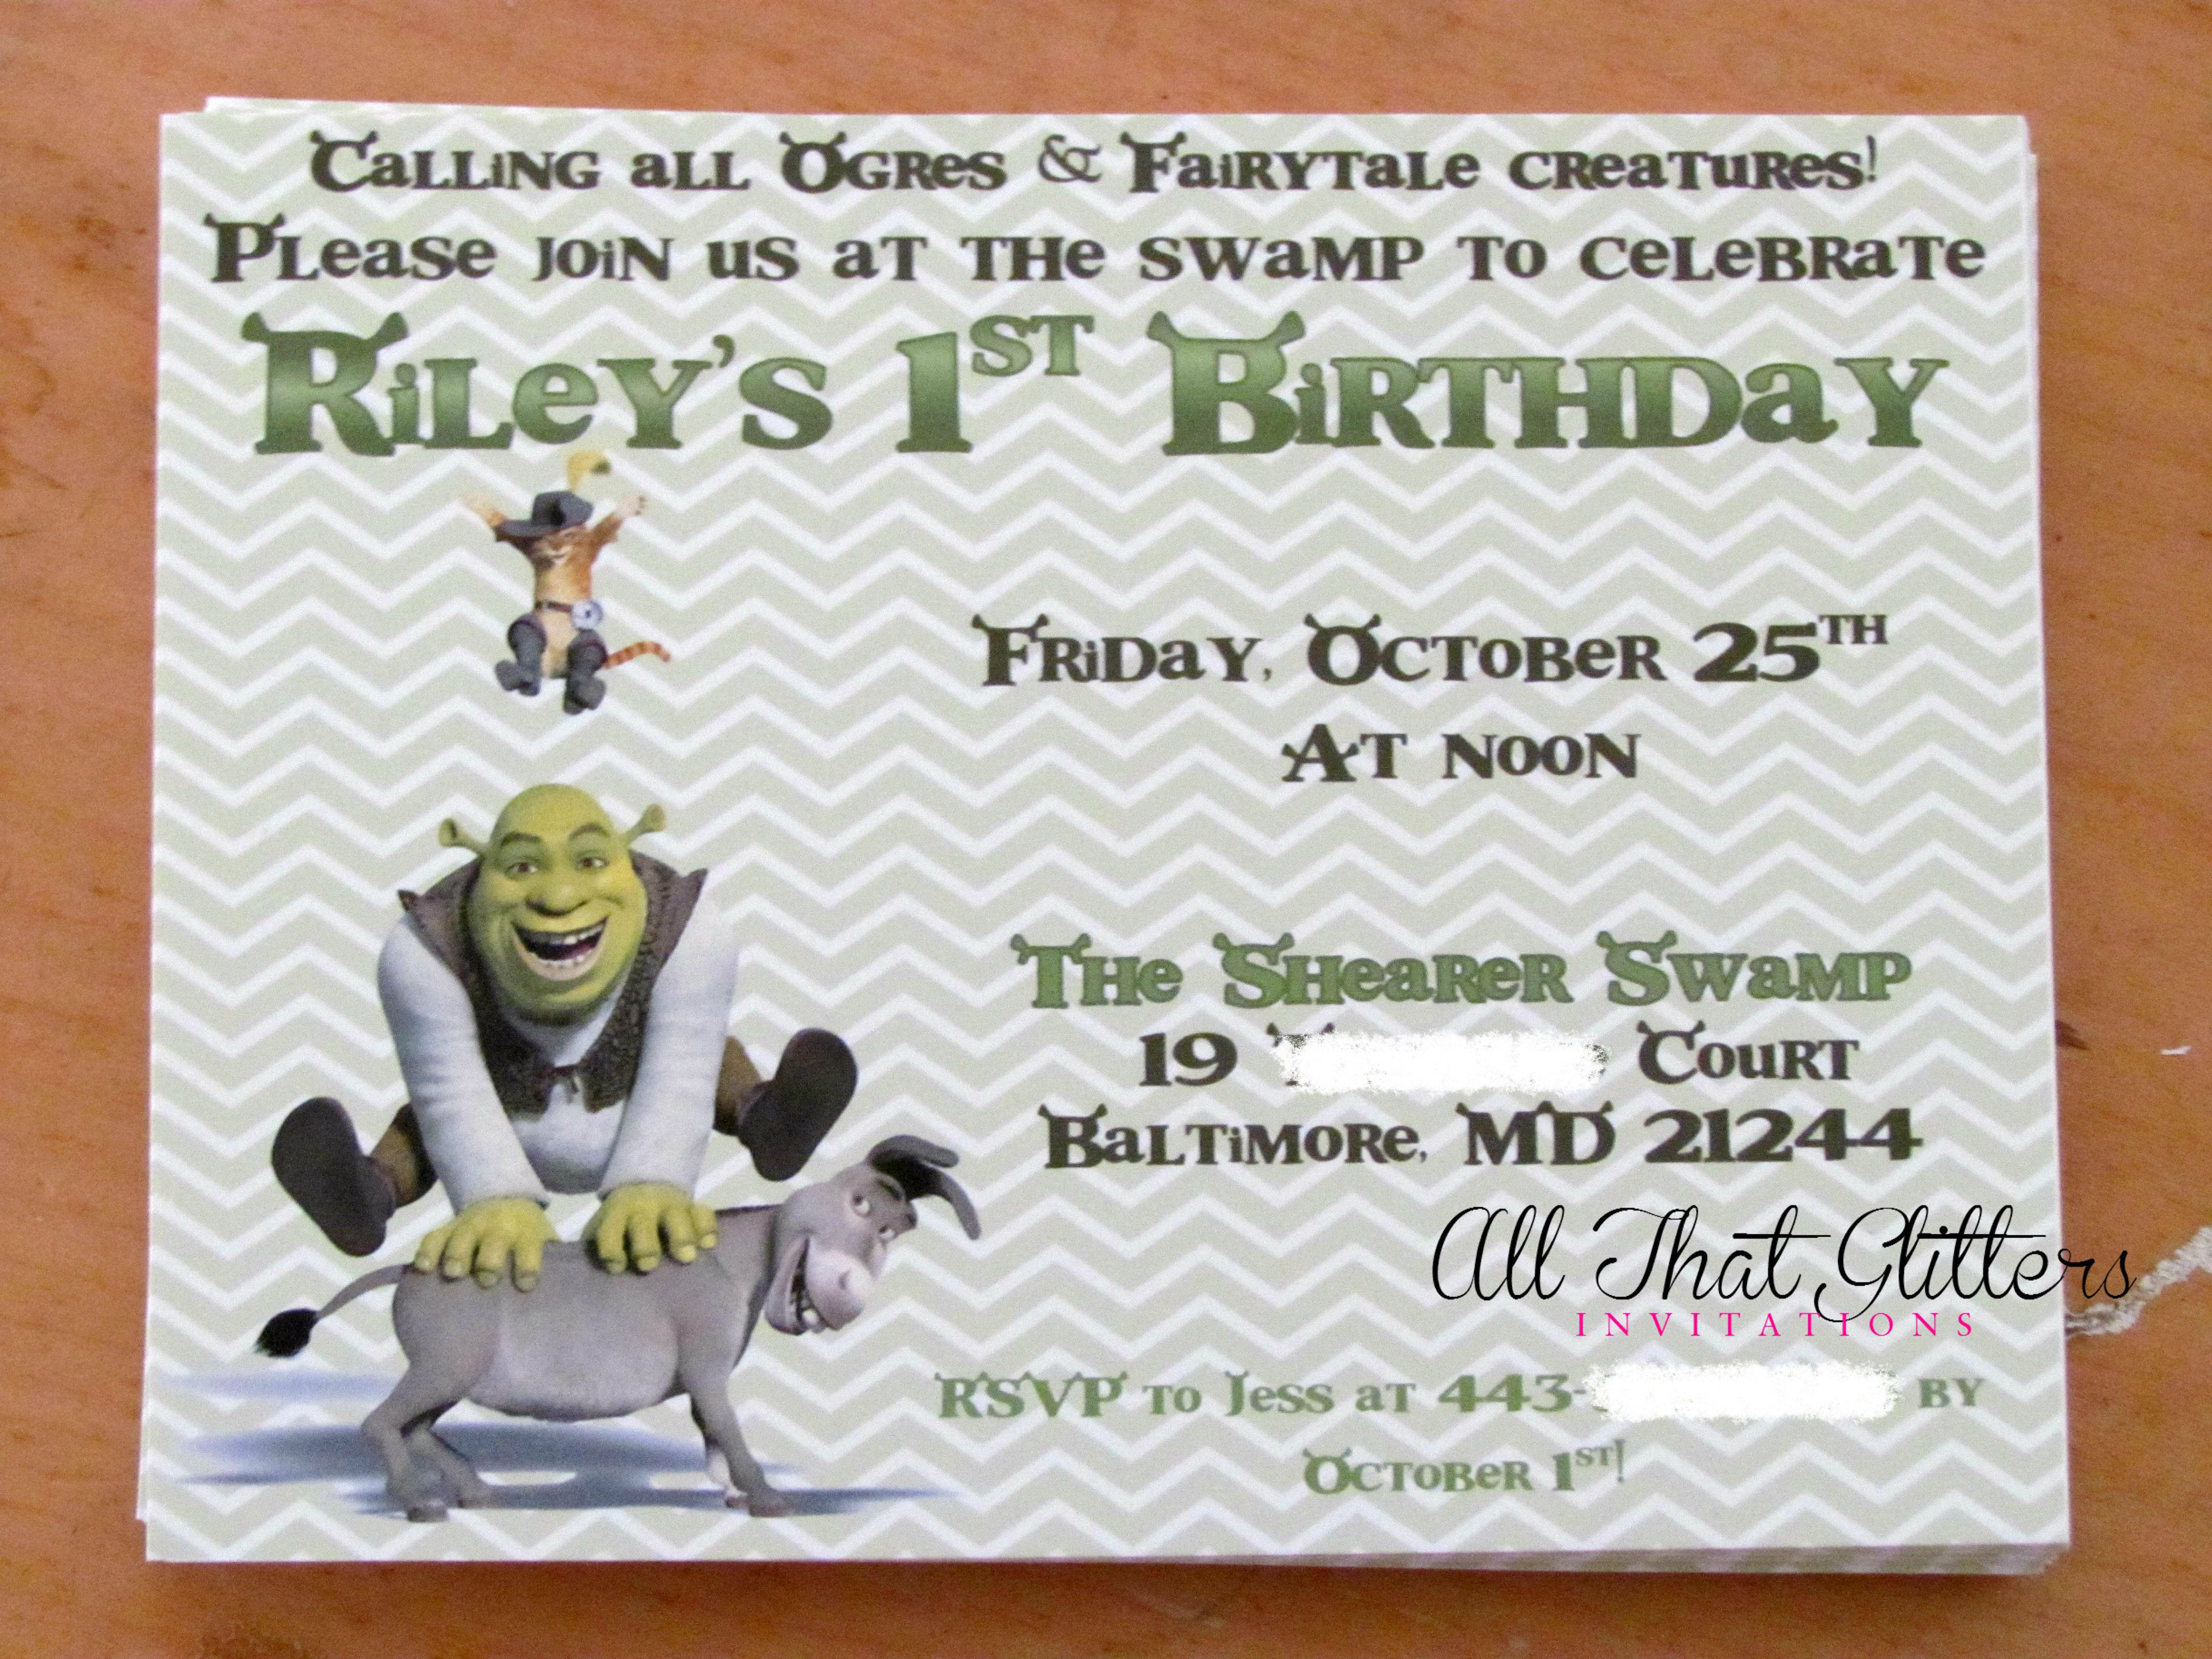 Offering Glitter Wedding Invitations & More | Micahs 1st bday ...